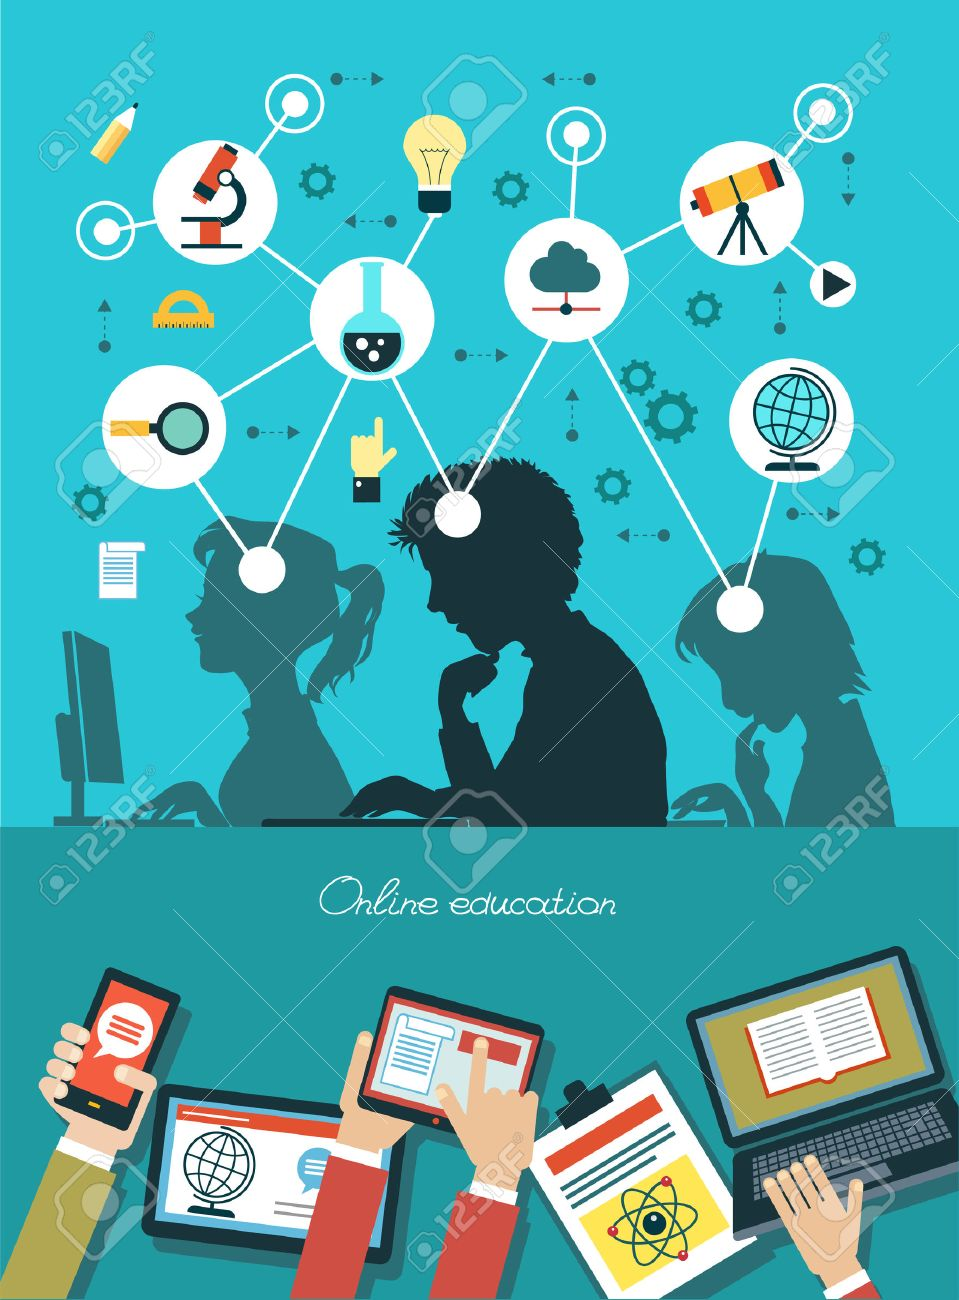 Icons education. Silhouette of students surrounded by icons of education. Concept online education. Human hand with a mobile phone, tablet, laptop and interface icons. Standard-Bild - 46874169